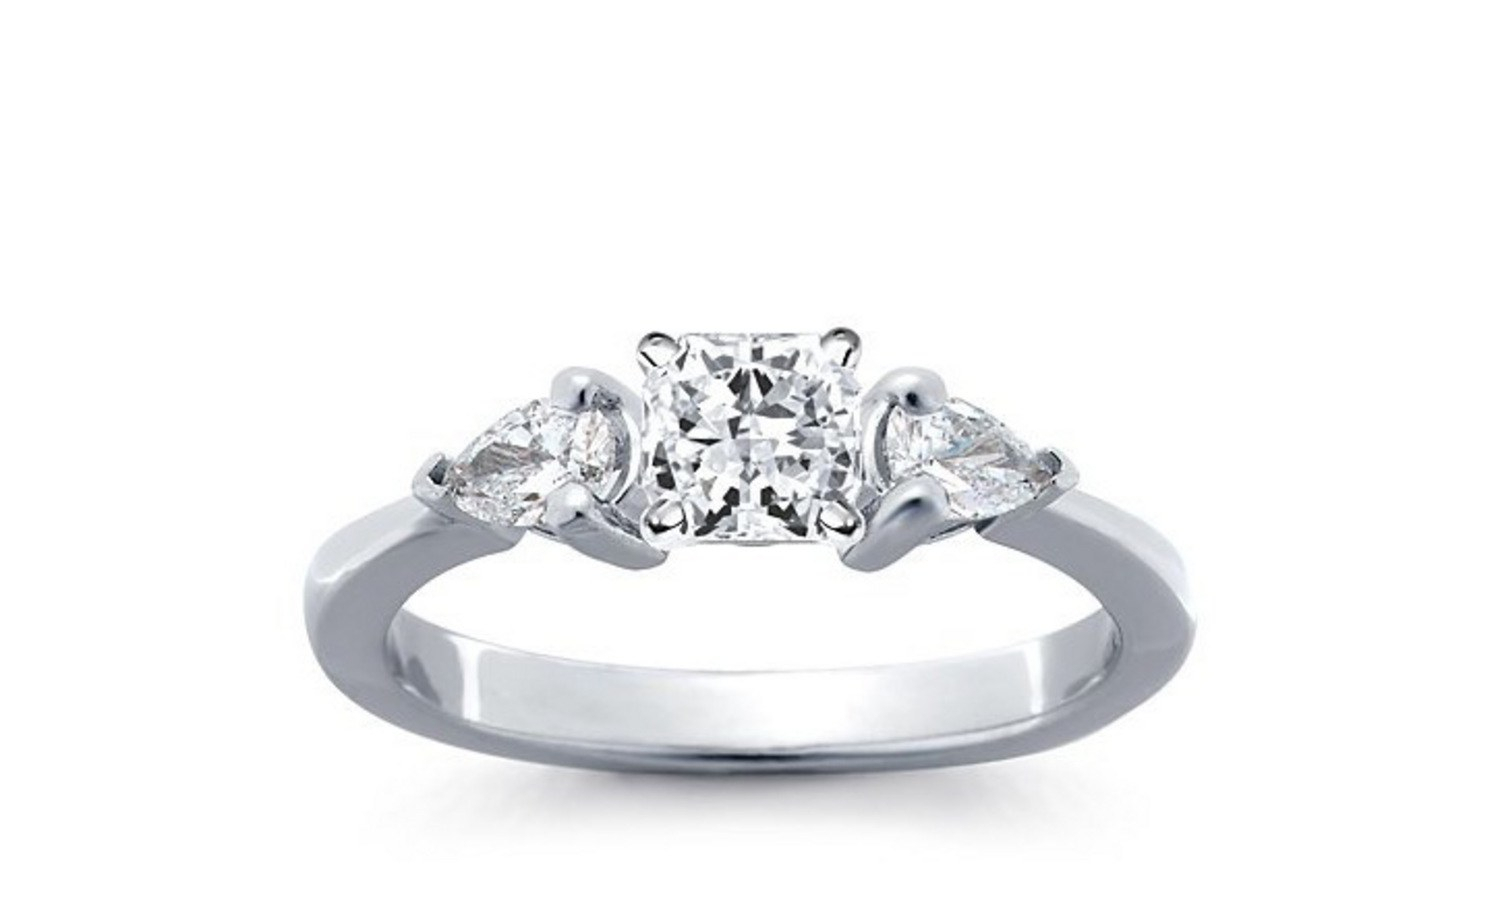 62 Diamond Engagement Rings Under $5,000 | Glamour Throughout Most Current Princess Cut And Round Diamond Anniversary Bands In White Gold (View 8 of 25)